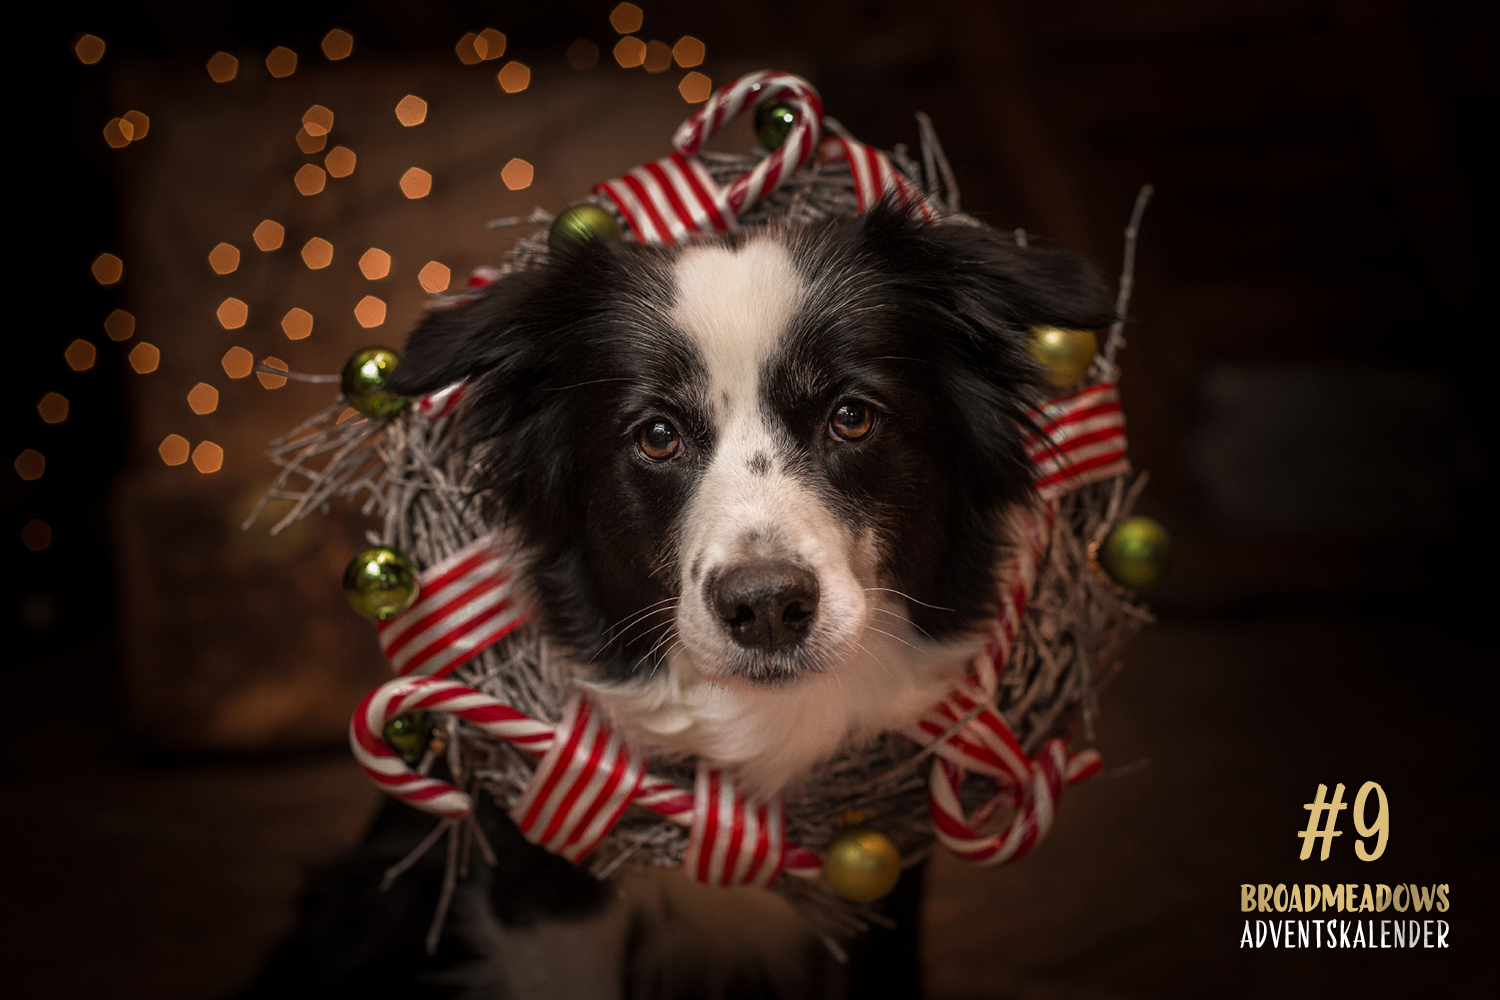 Broadmeadows Border Collies Adventskalender – No. 9: »Nell« (On My Own Nell Now or never)